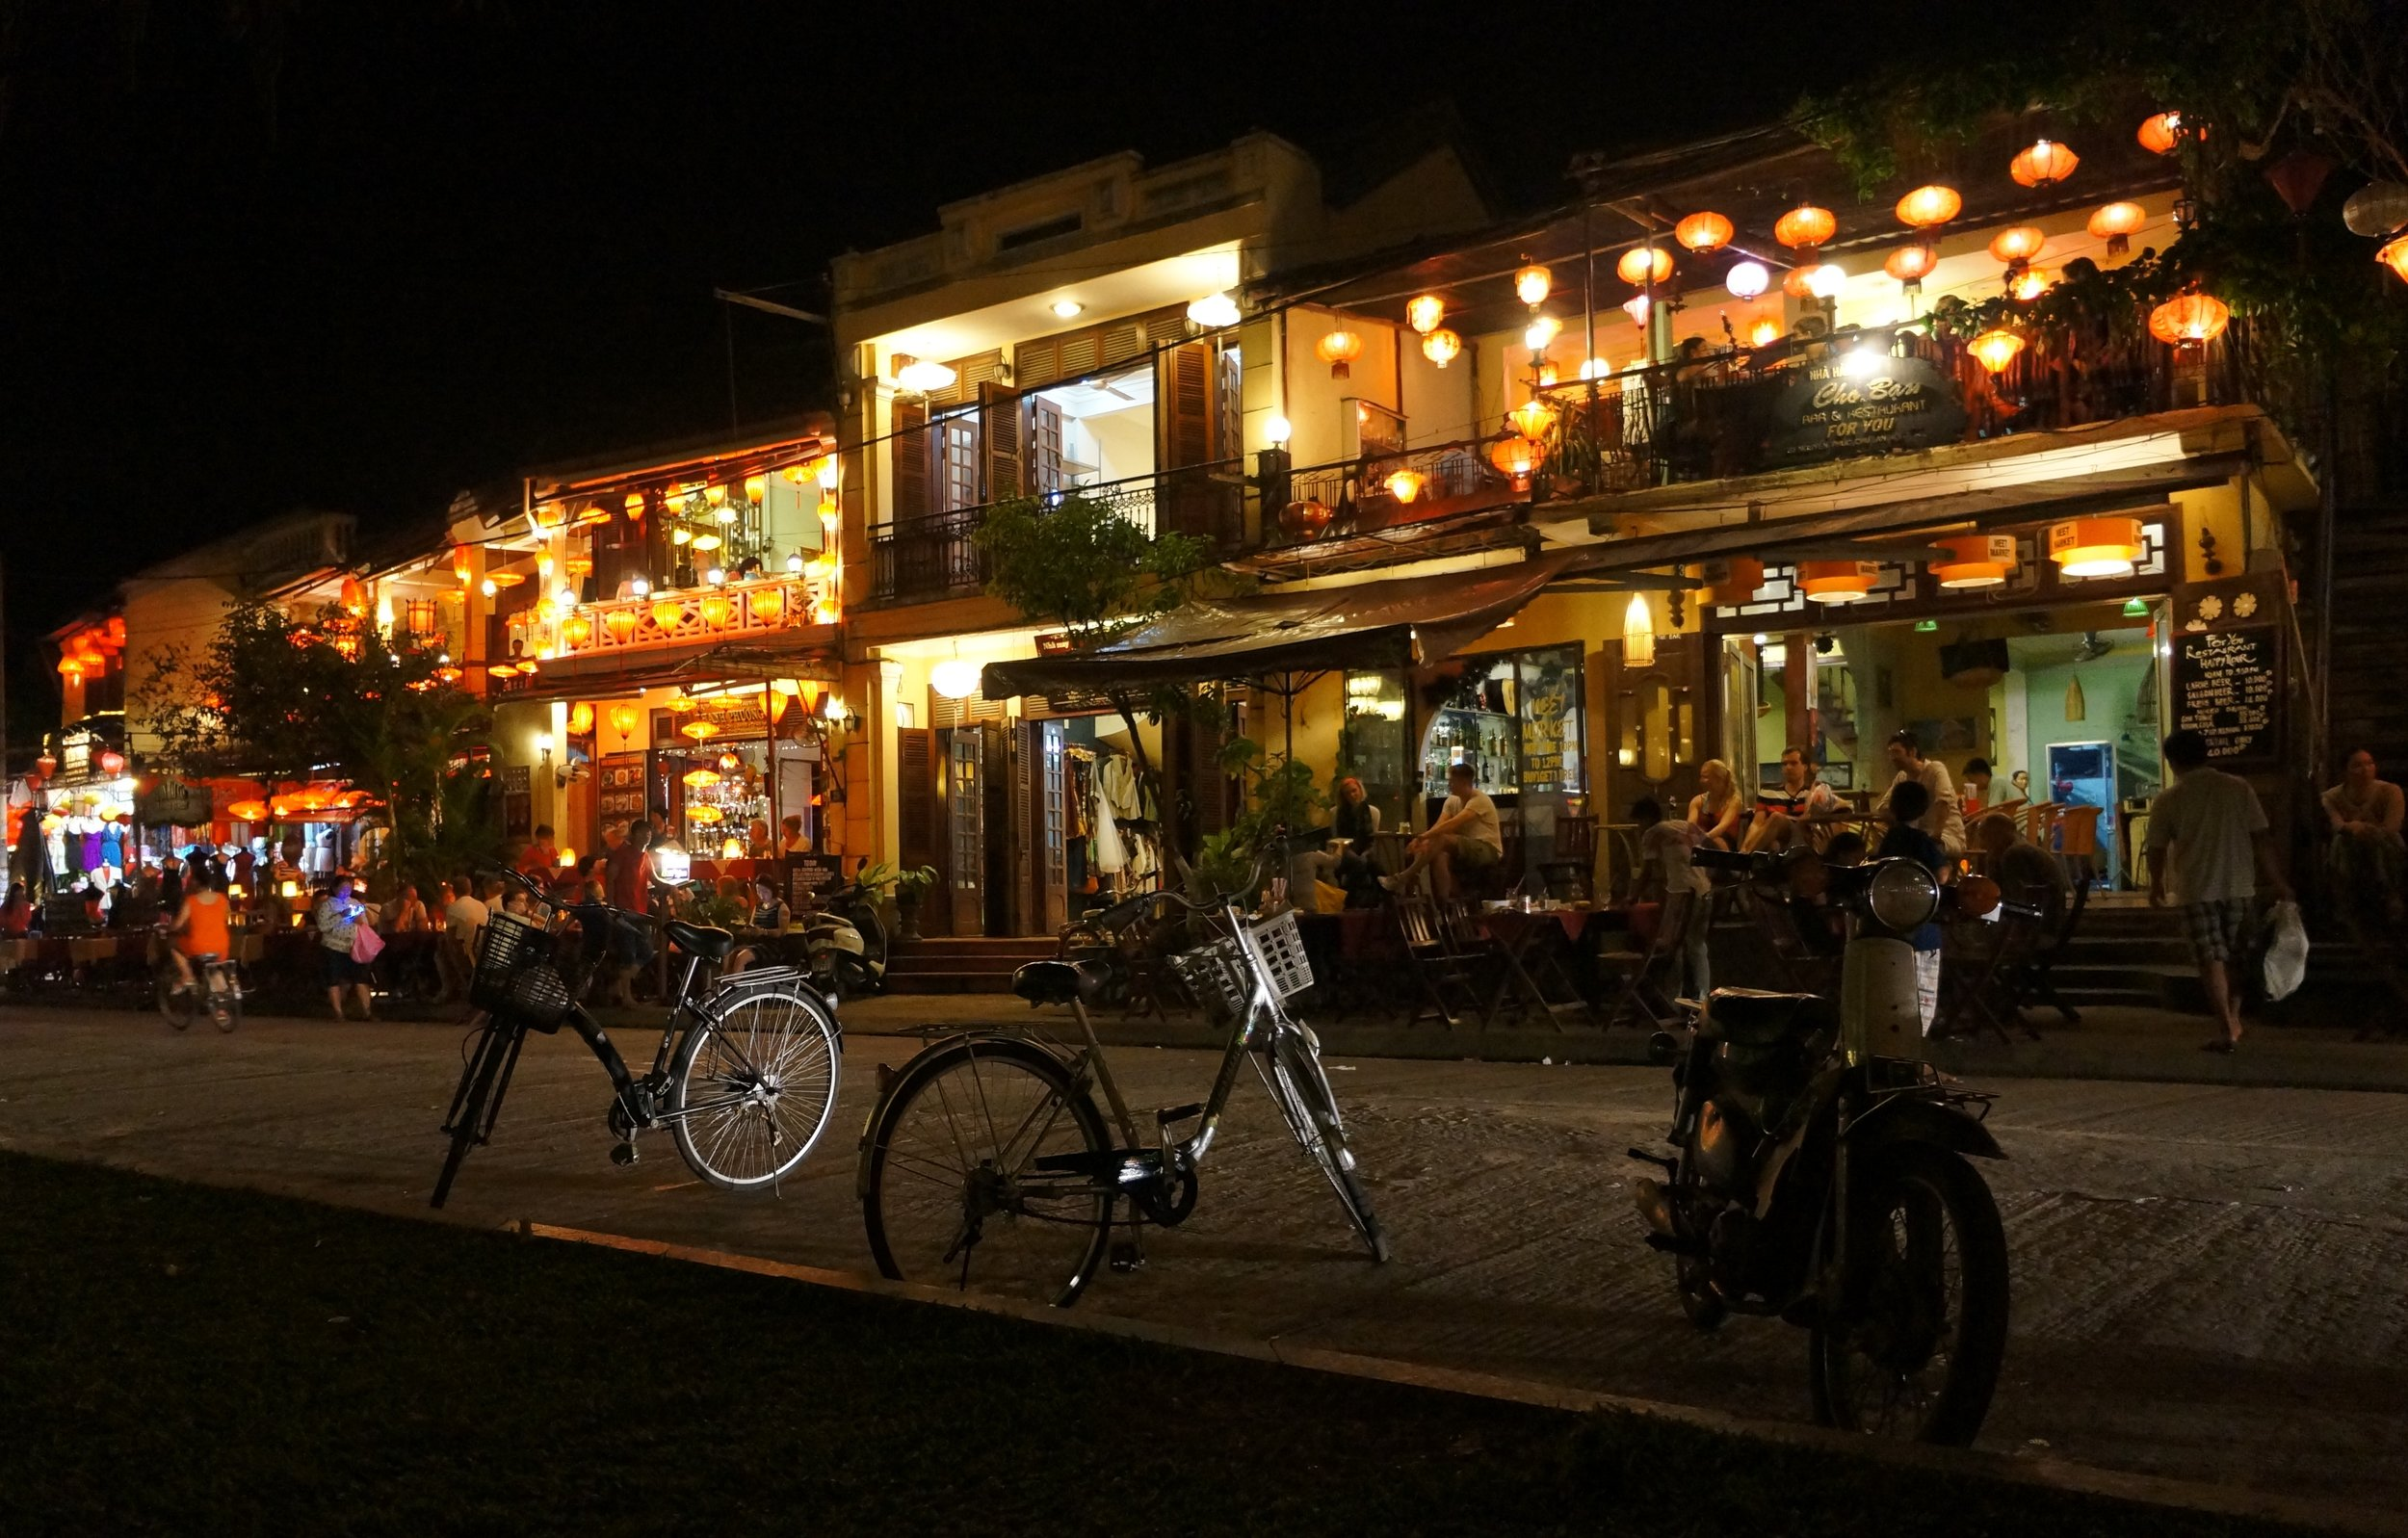 Hoi An, Vietnam Streets at Night.